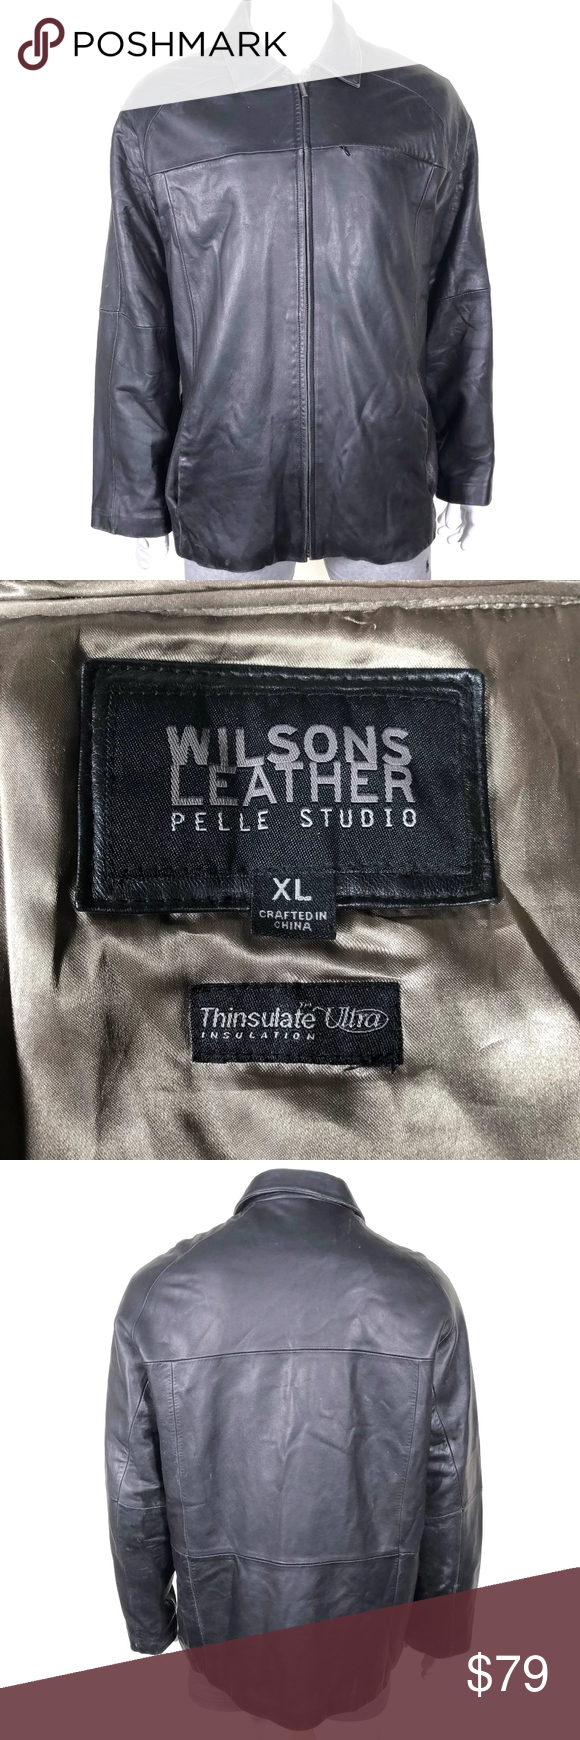 Wilsons Leather Thinsulate Ultra Jacket Zip Lining Wilsons